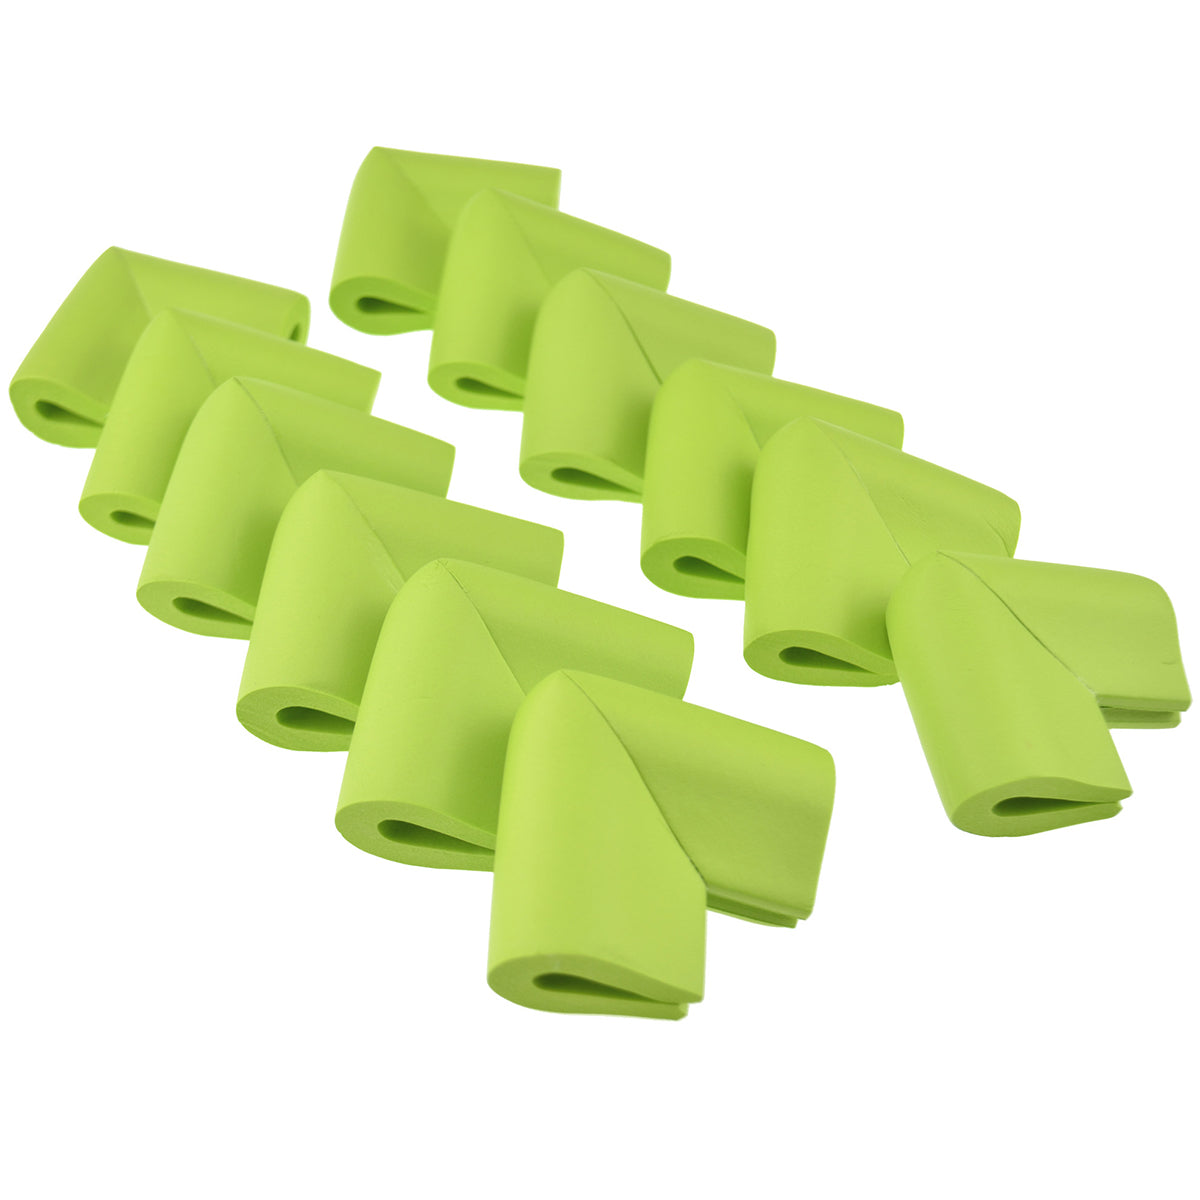 2 rows of 6 pieces green u-shaped form corner protector neatly placed with corner upward show with a white background